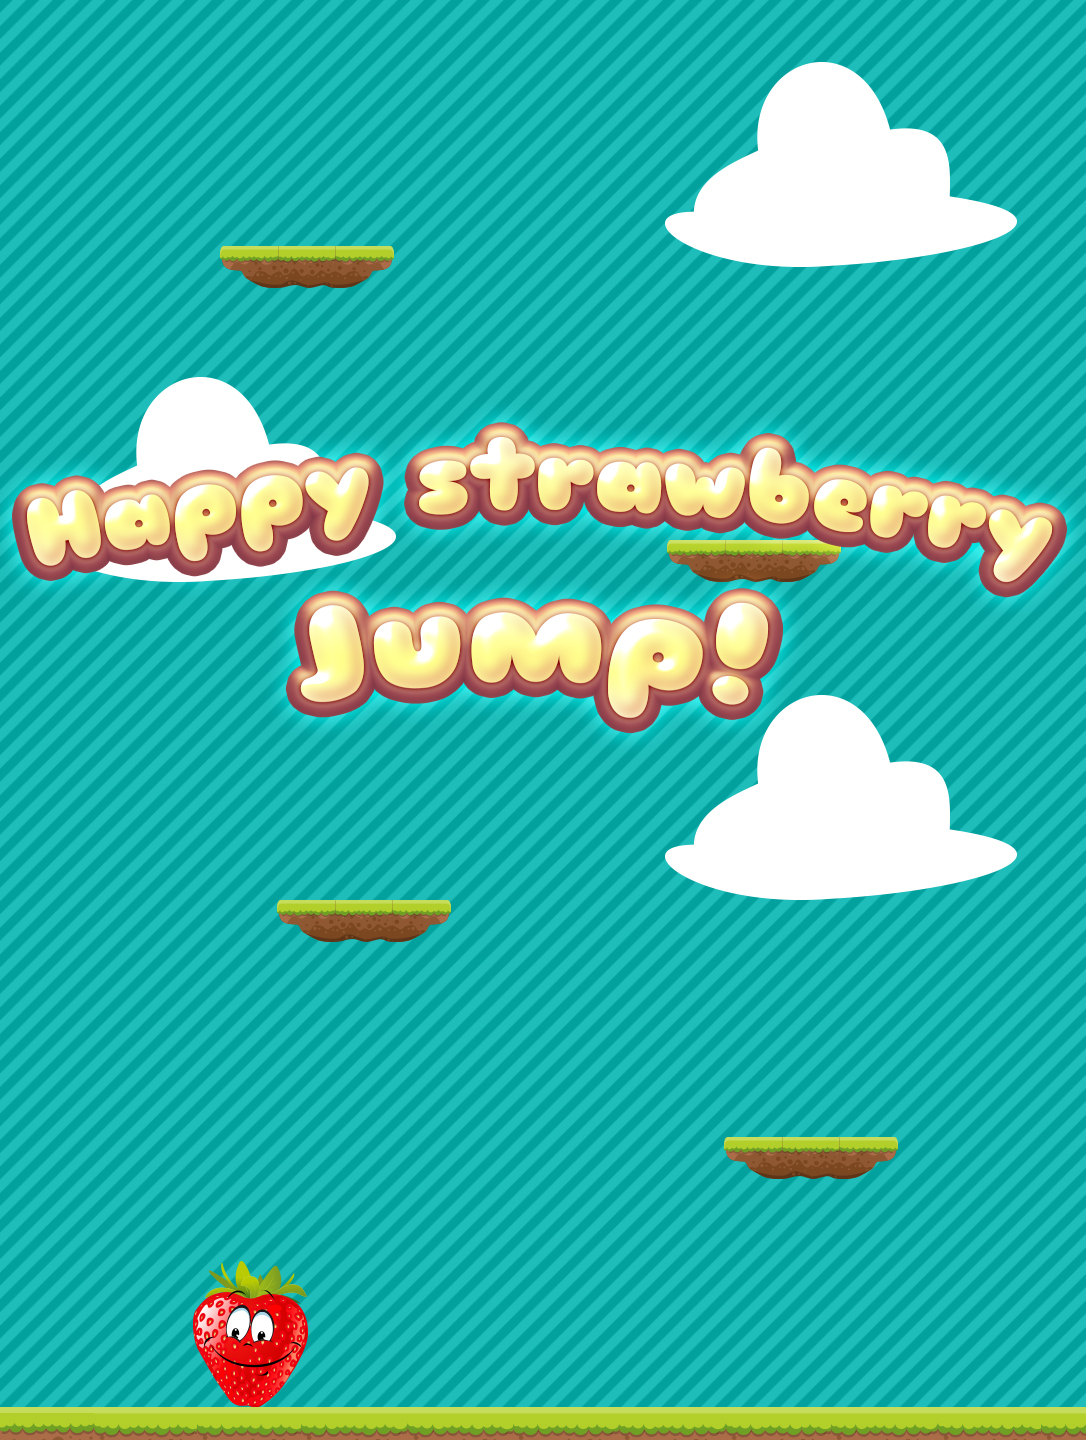 Happy Strawberry Jump